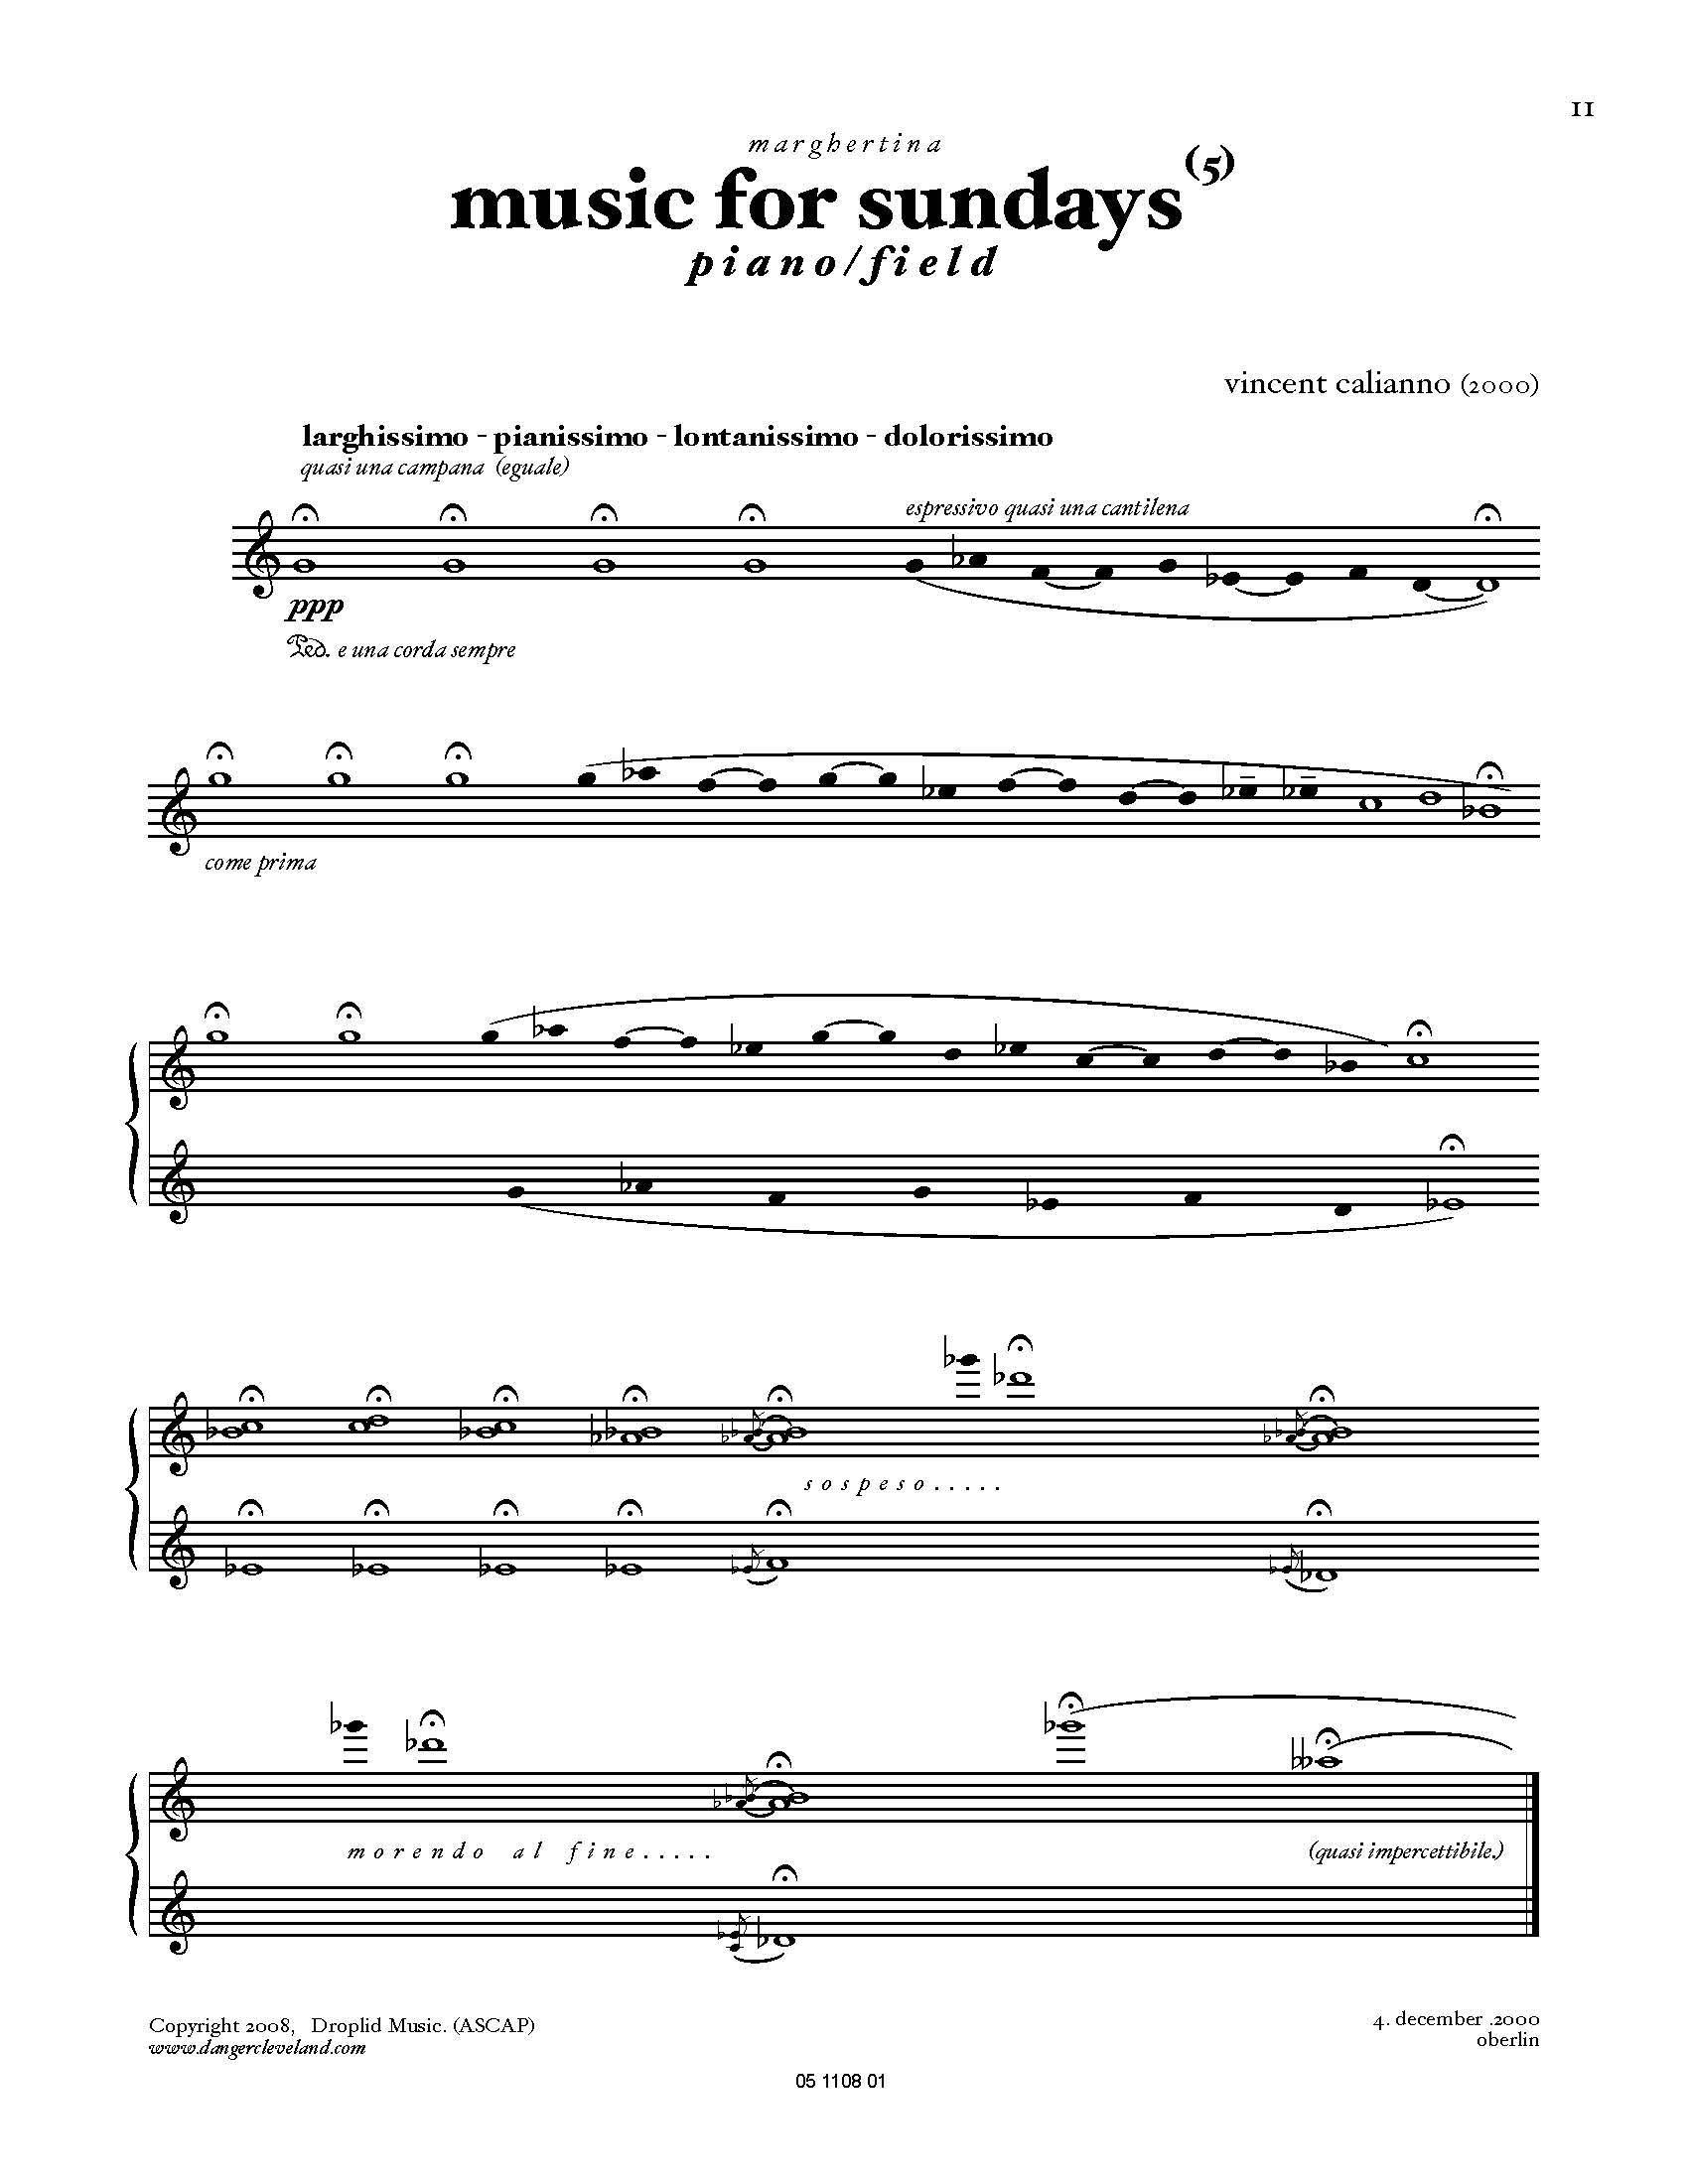 005-X1 Piano Pieces_Page_17.jpg